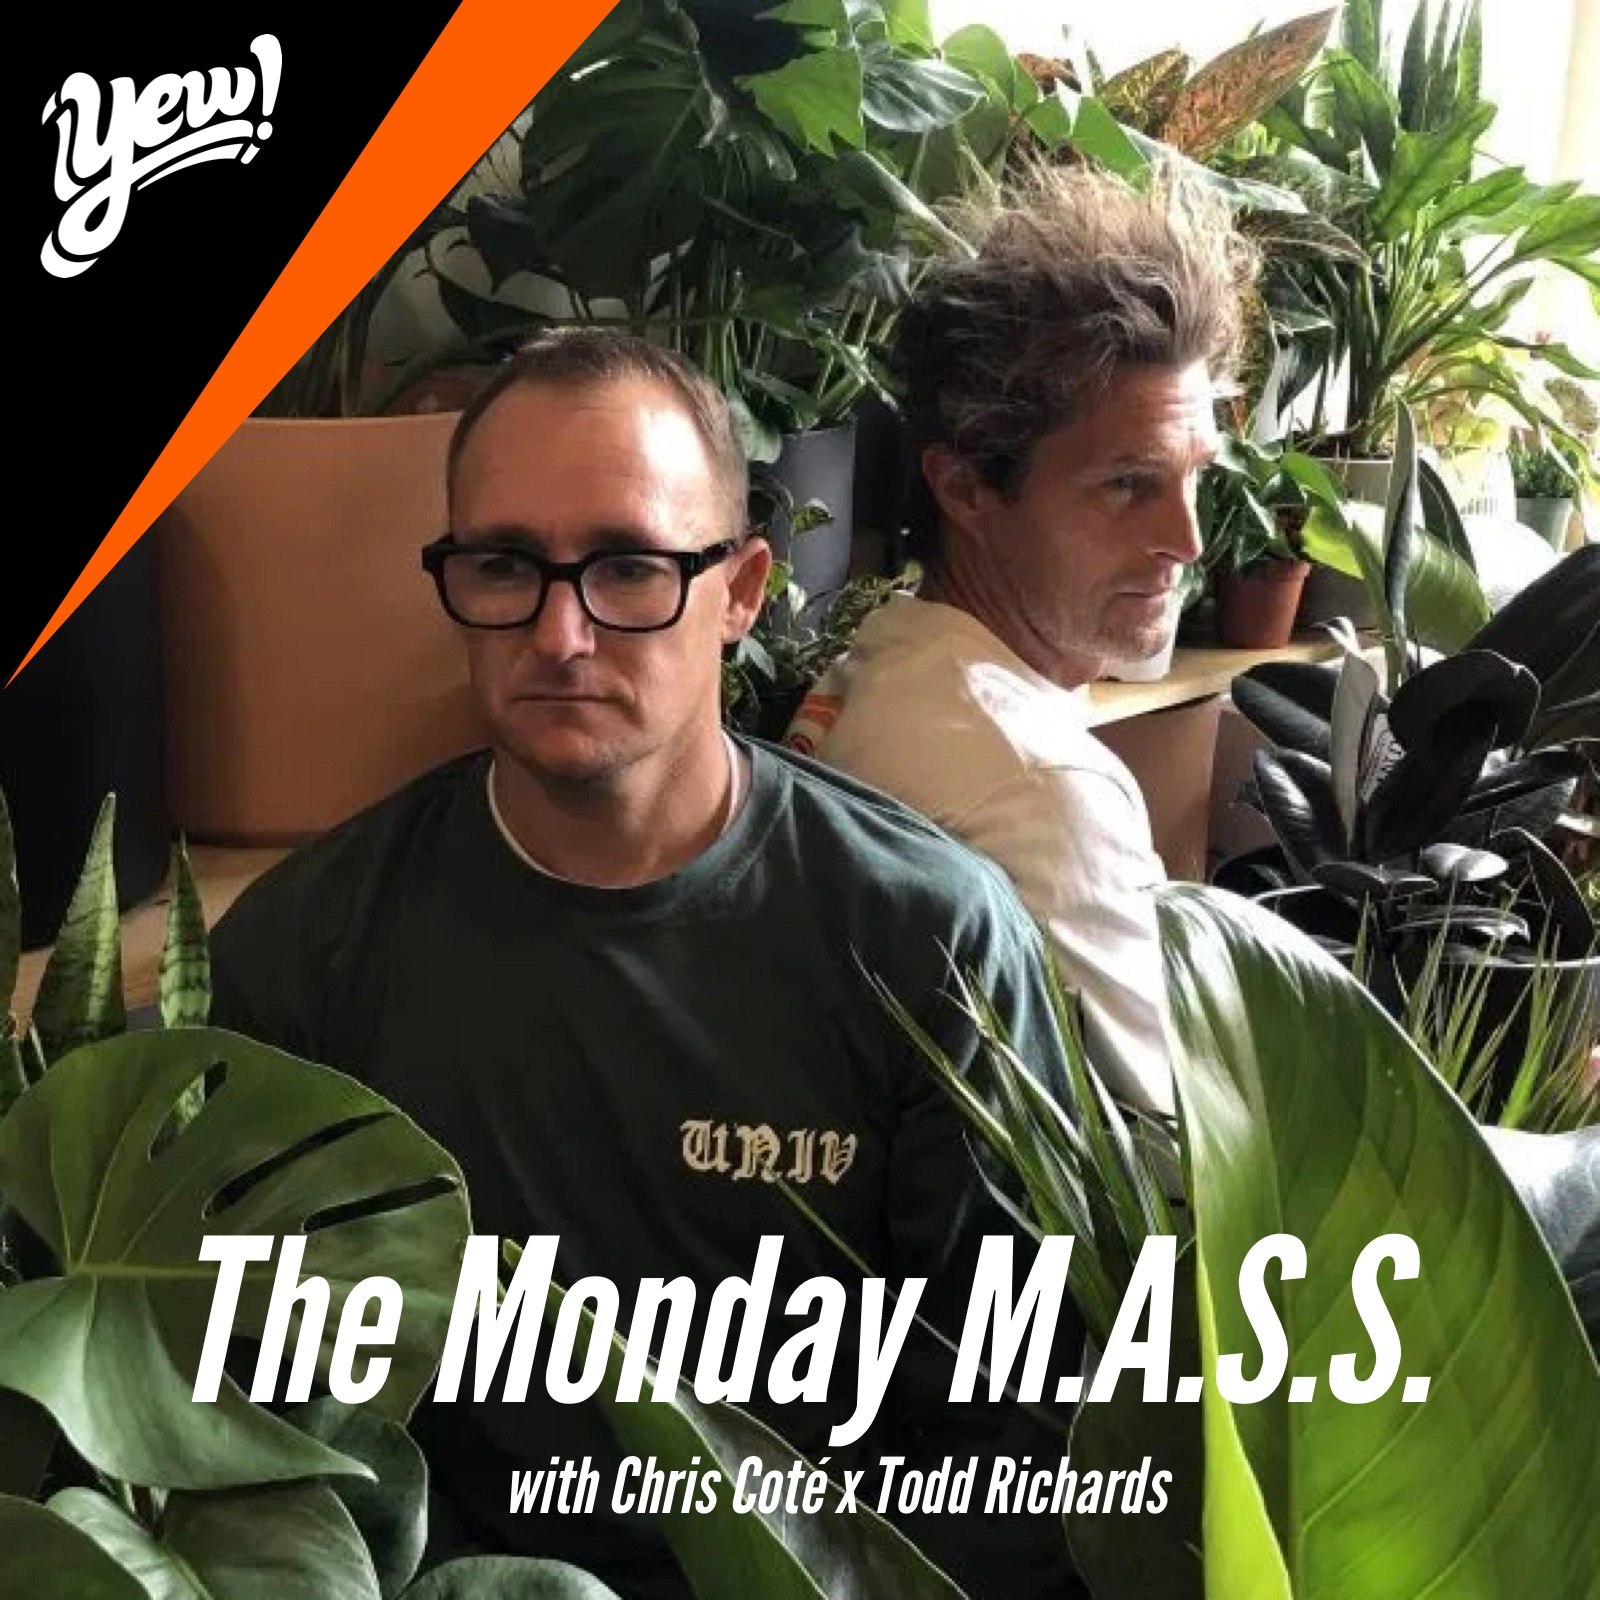 The Monday M.A.S.S. with Chris Coté and Todd Richards show art